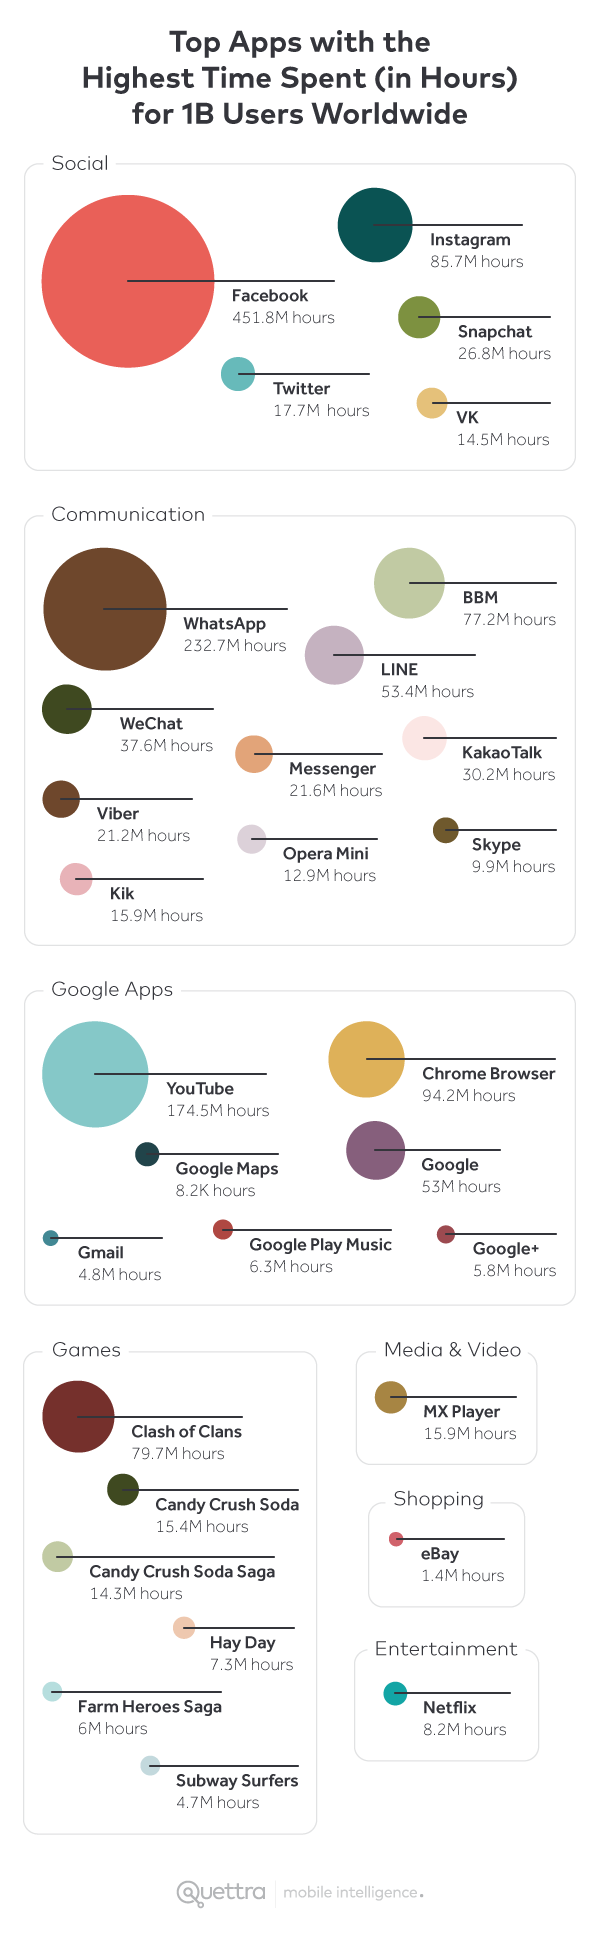 Top Apps with the Highest Time Spent (in Hours) for 90M Users Worldwide